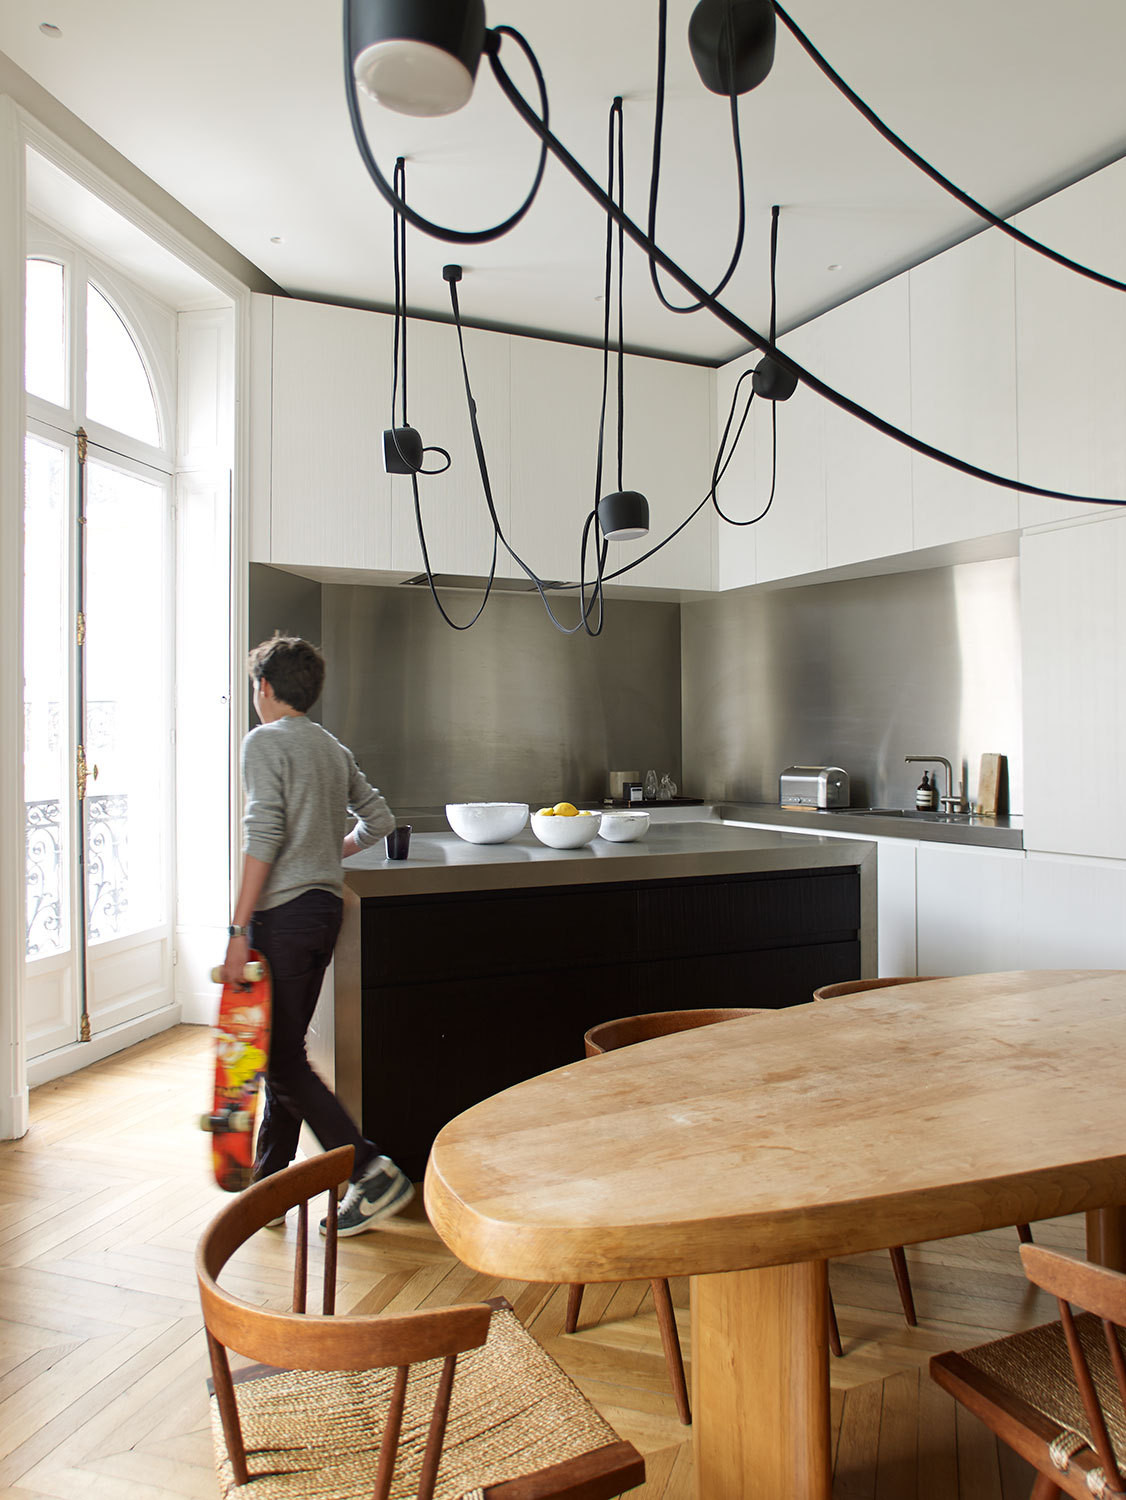 Stainless steel elements and Ronan & Erwan Bouroullec's Aim pendant lamps give the kitchen a futuristic feel.